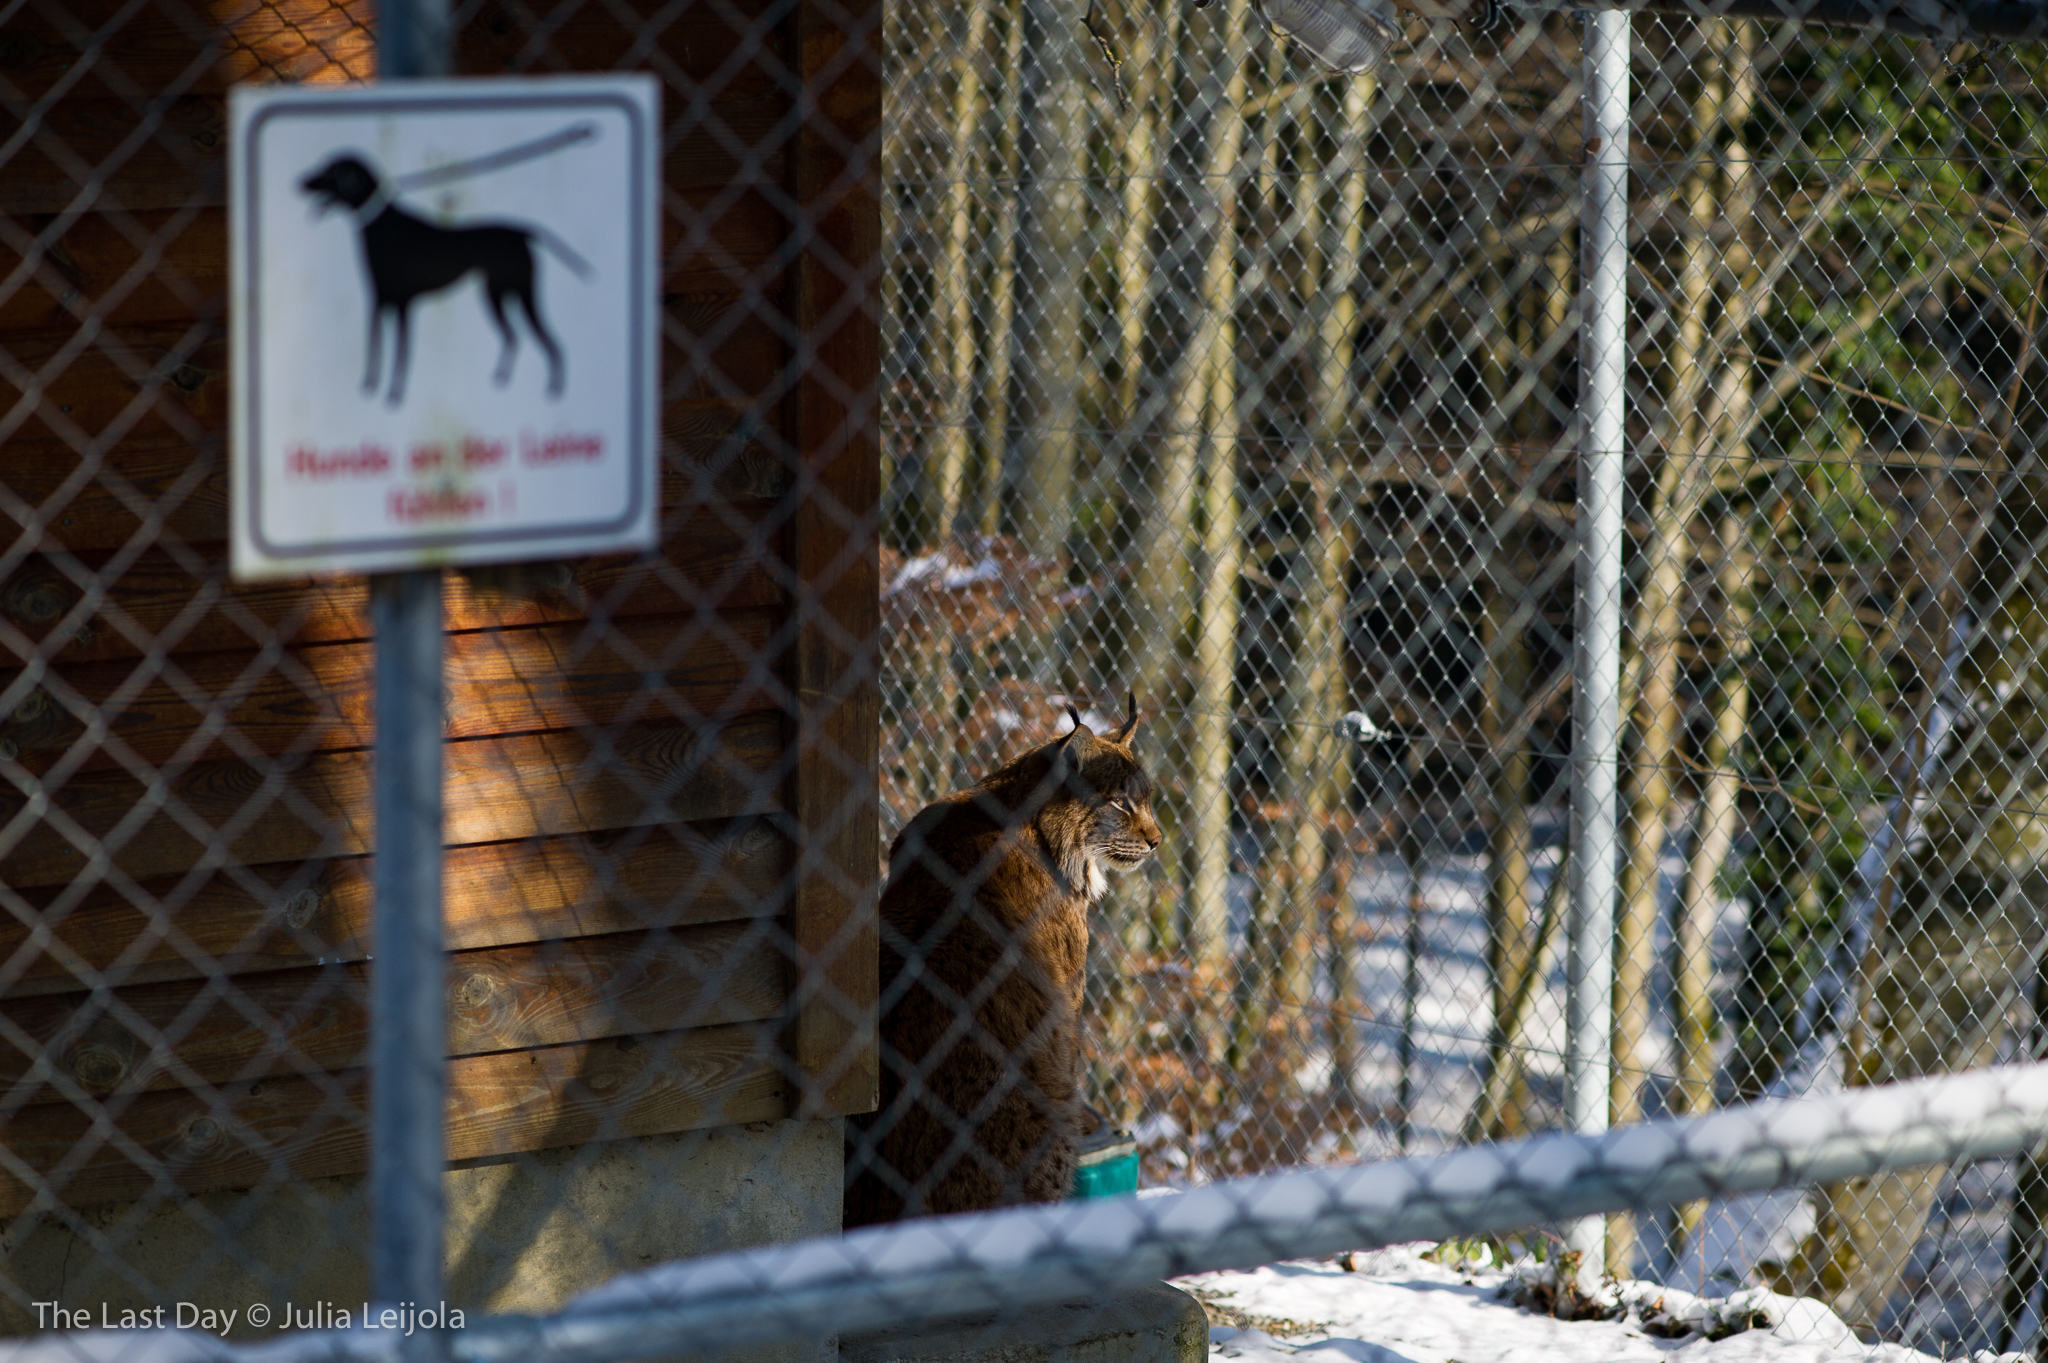 A lynx lynx is sat in a big cage - in the foreground, out of focus, hangs a 'keep your dog on the lead' sign.